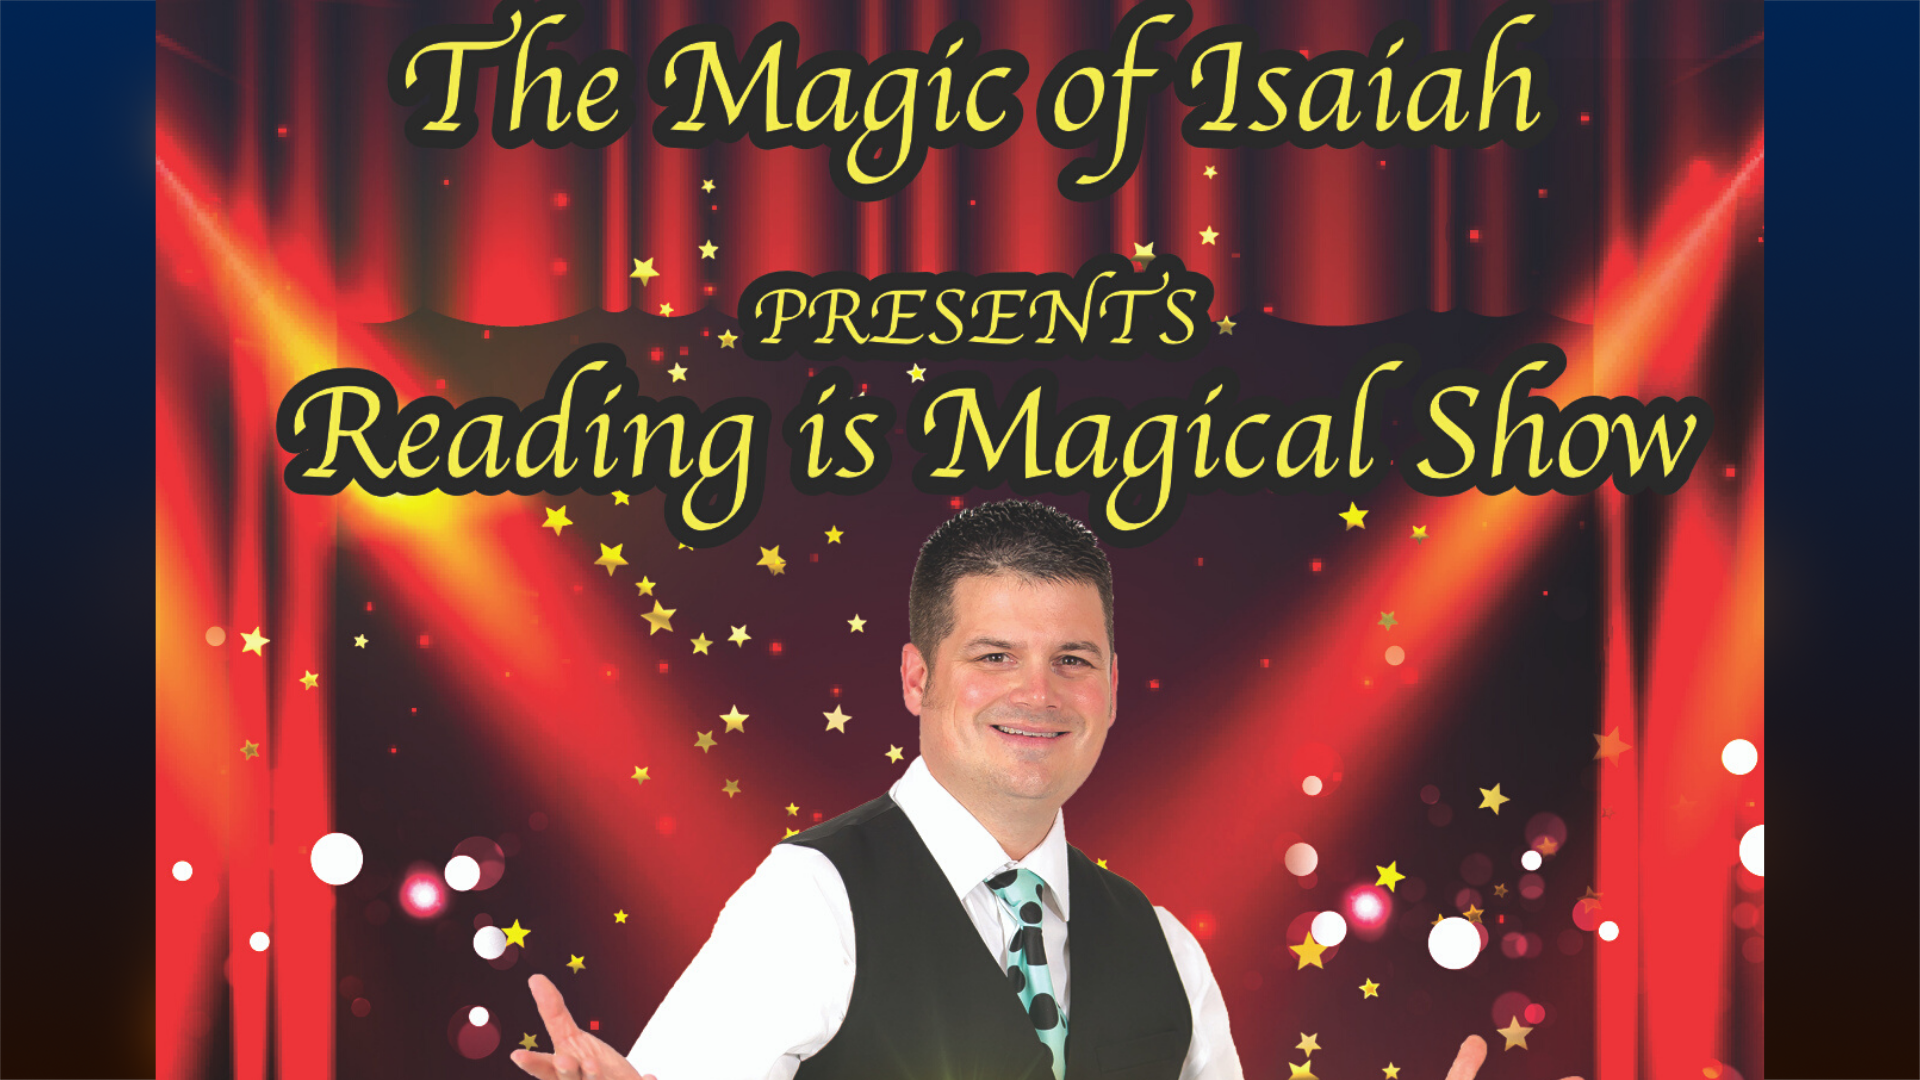 The Magic of Isaiah. Isaiah is standing in front of a red curtain.